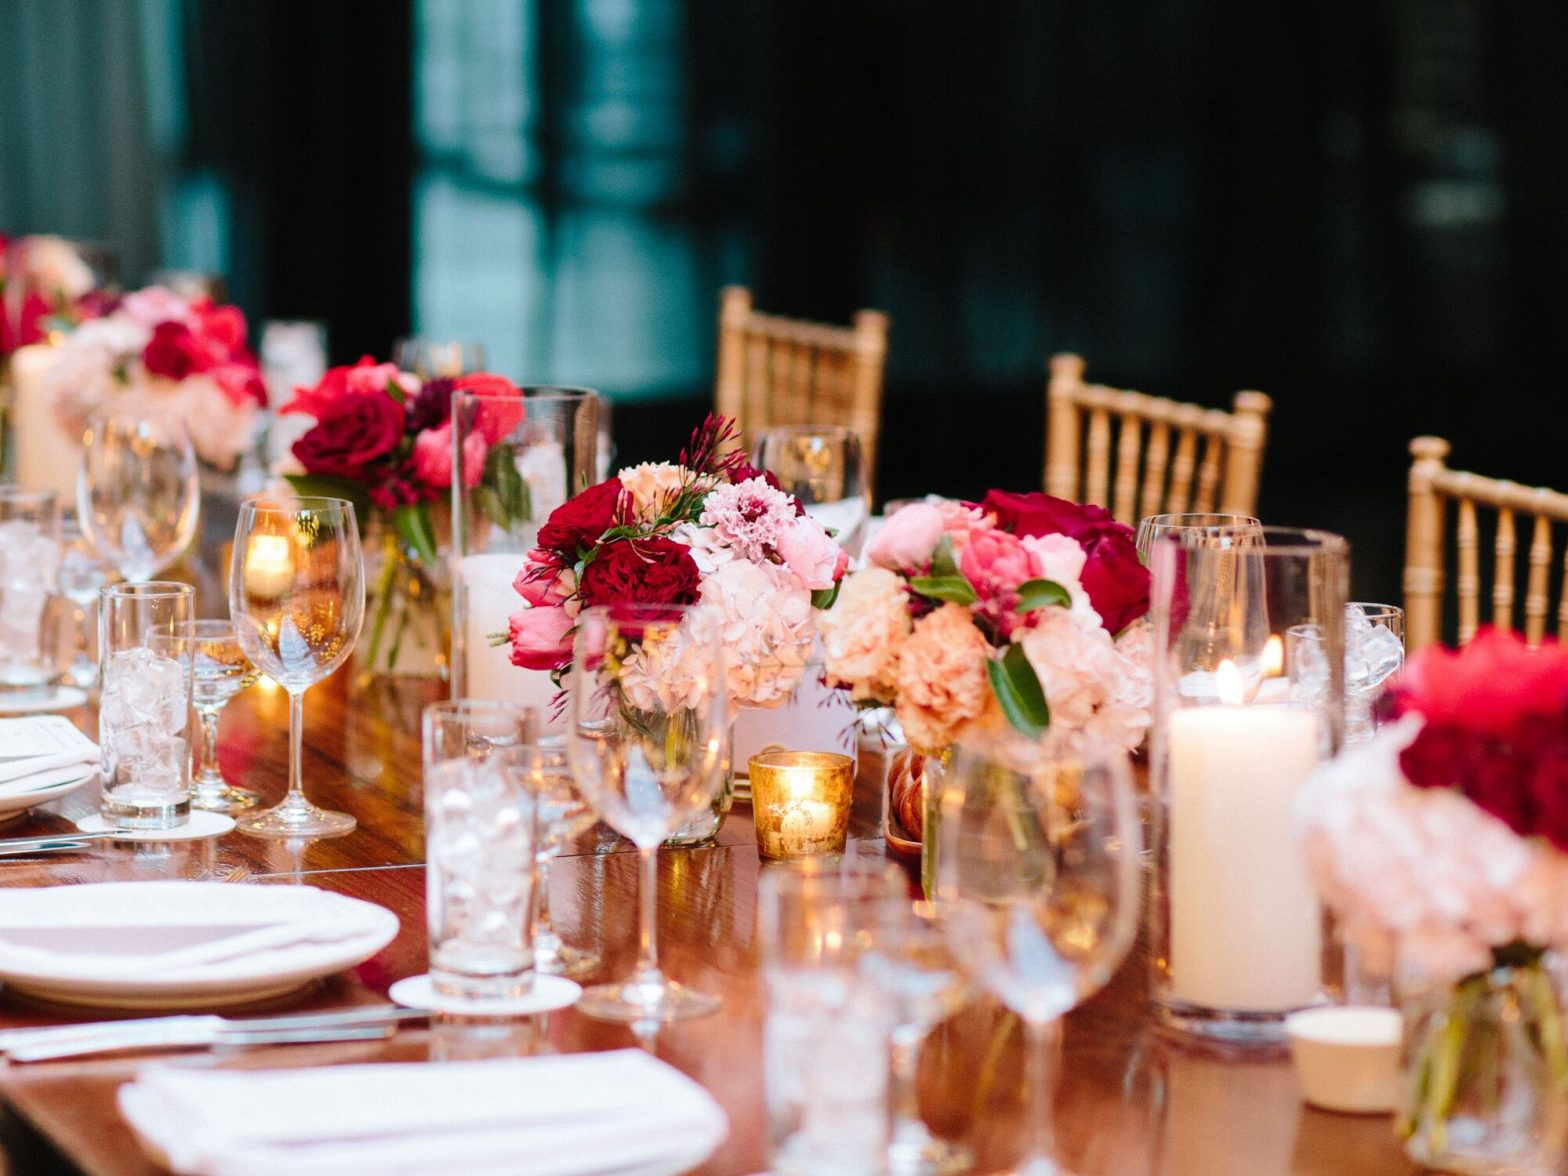 How soon should you start making preparations for your party